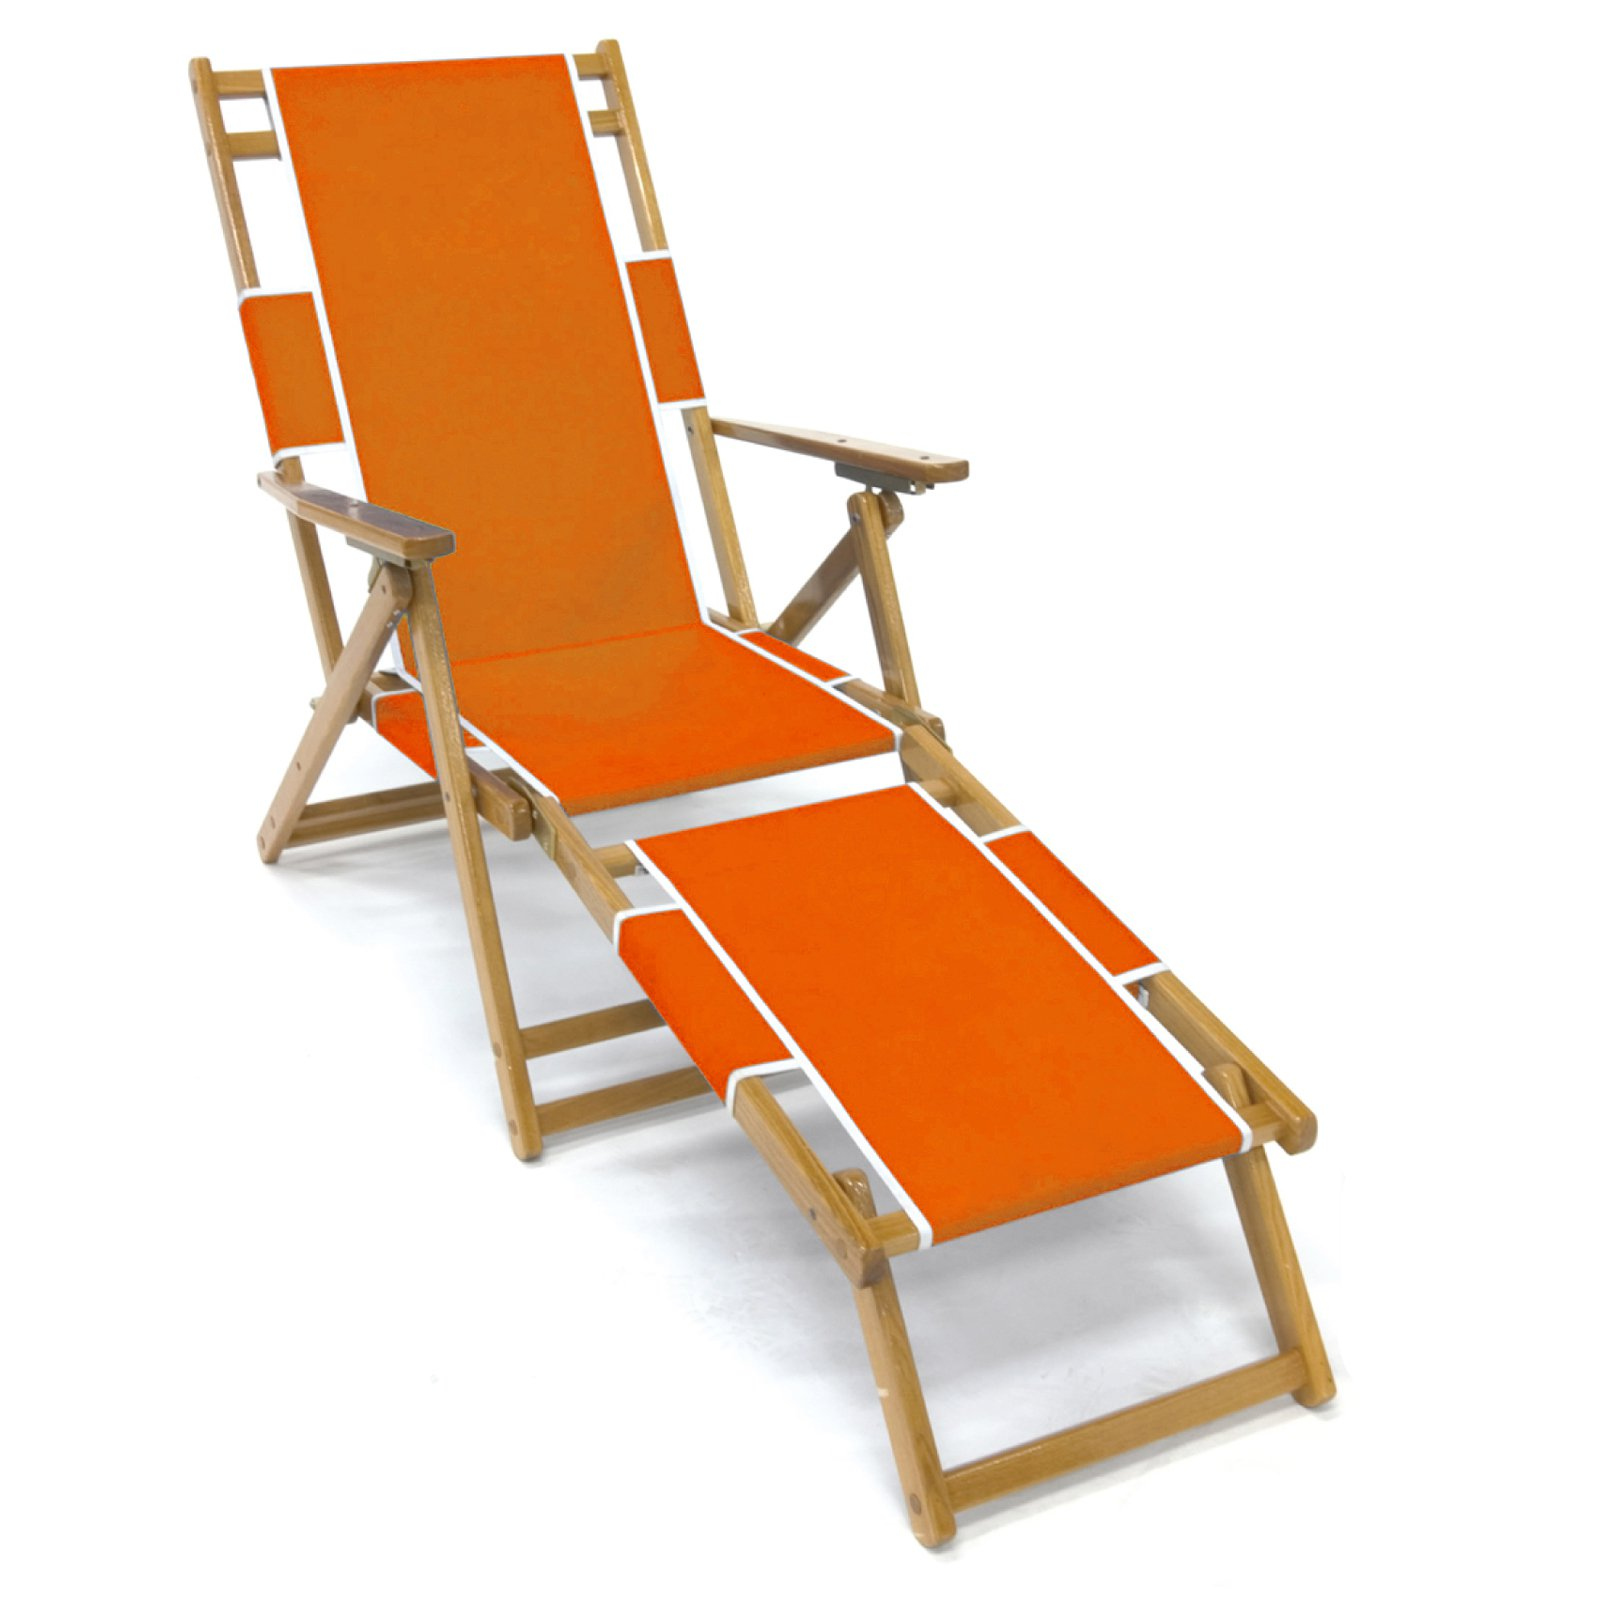 wood beach chairs aeron chair by herman miller manual frankford umbrella commercial oak walmart com